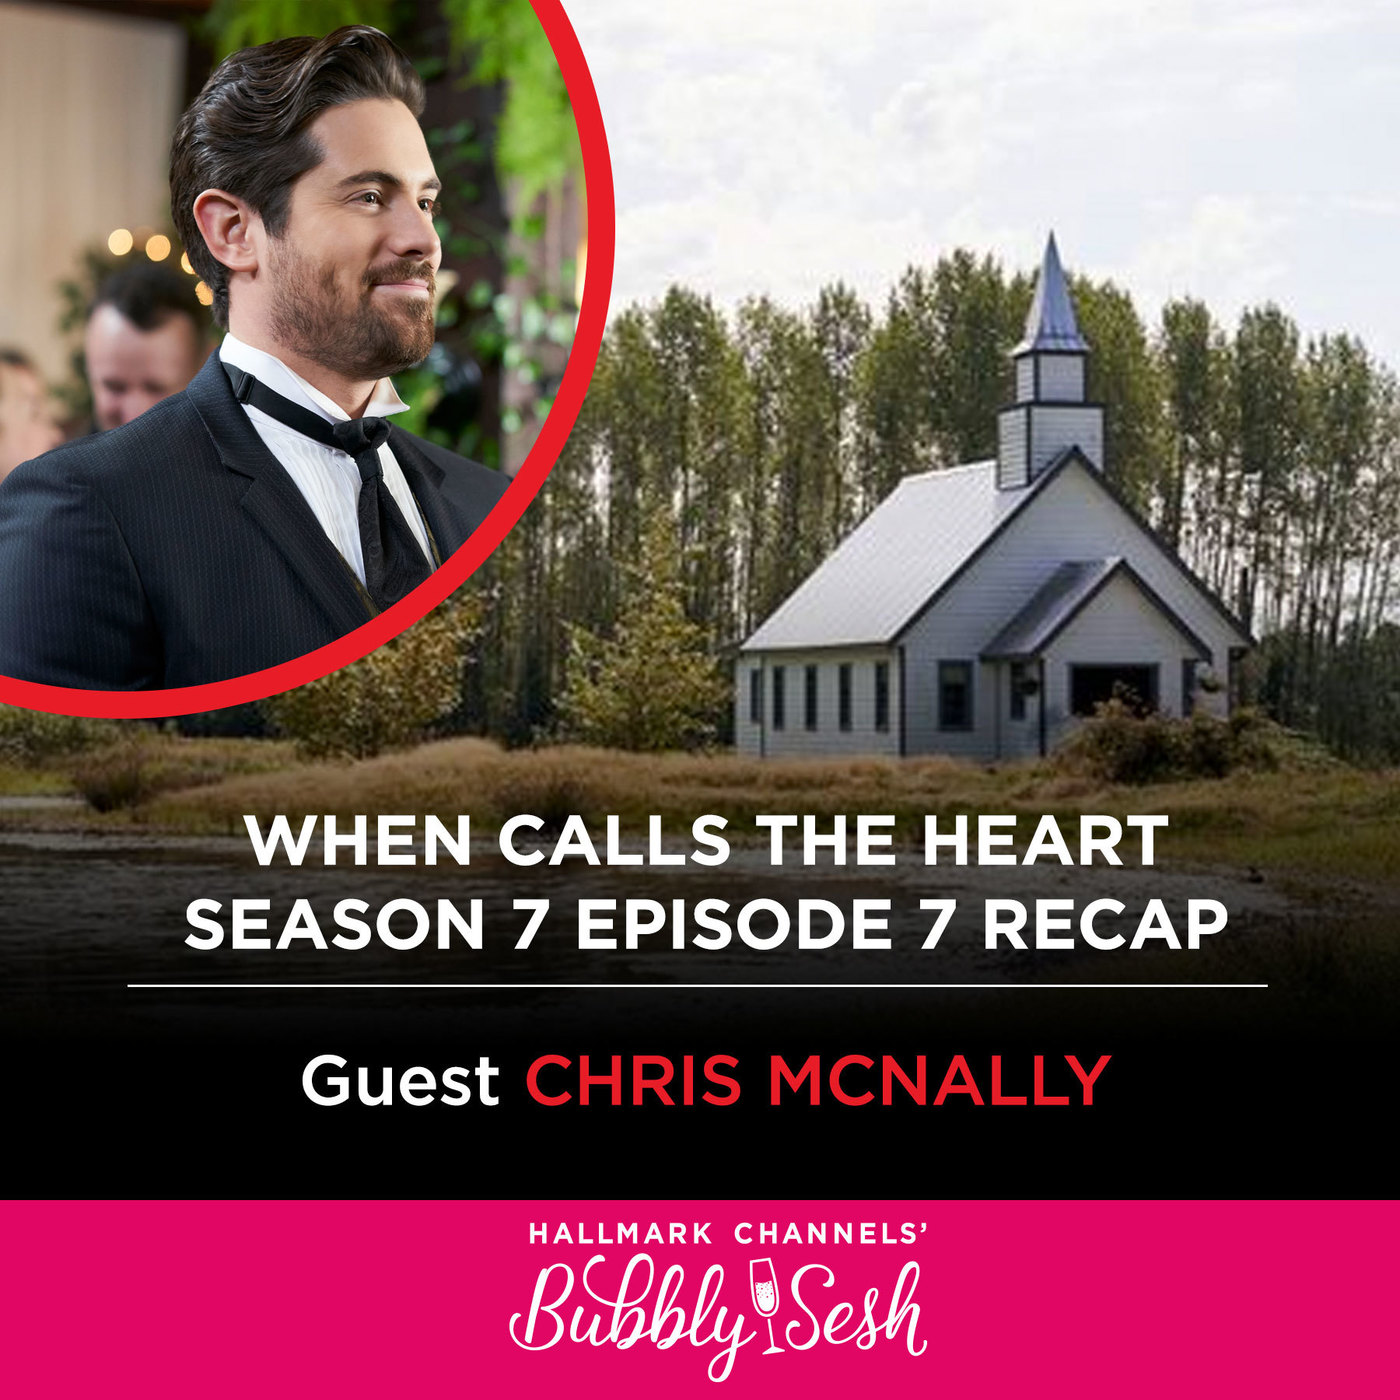 When Calls the Heart Season 7 Episode 7 Recap with Guest Chris McNally